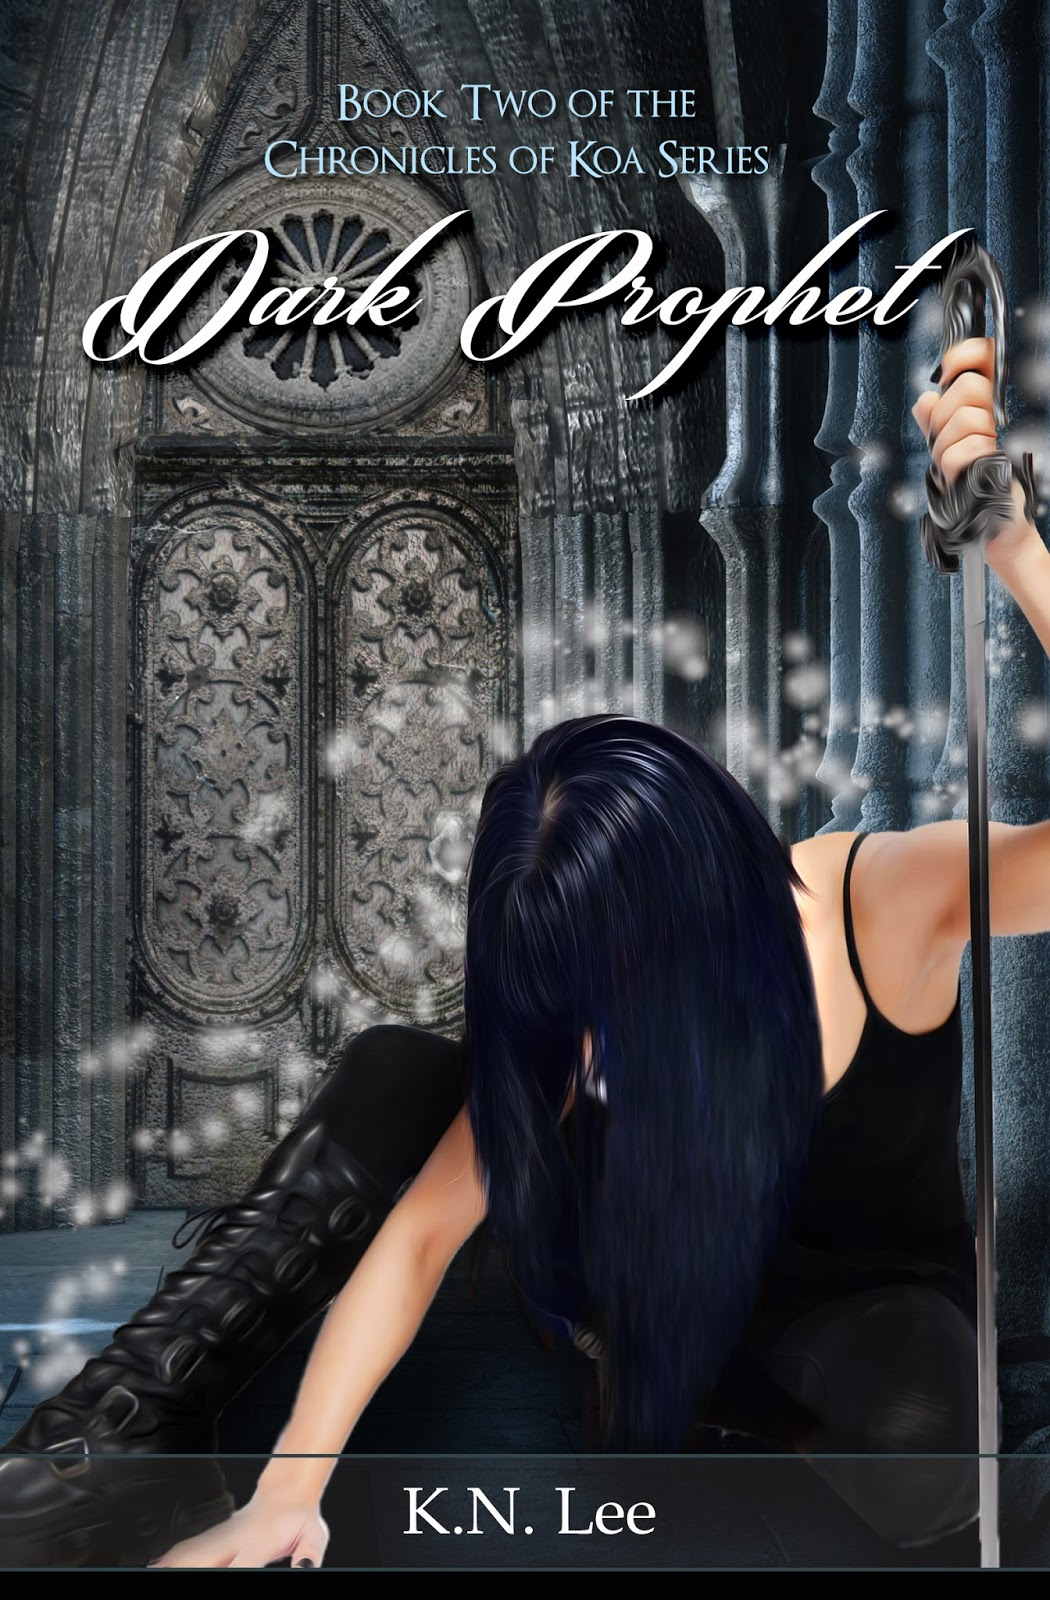 http://www.amazon.com/Dark-Prophet-Book-Chronicles-Series-ebook/dp/B00ISEO5H4/ref=pd_sim_kstore_1?ie=UTF8&refRID=0EDEJ9M8NVA6W27SCC6V